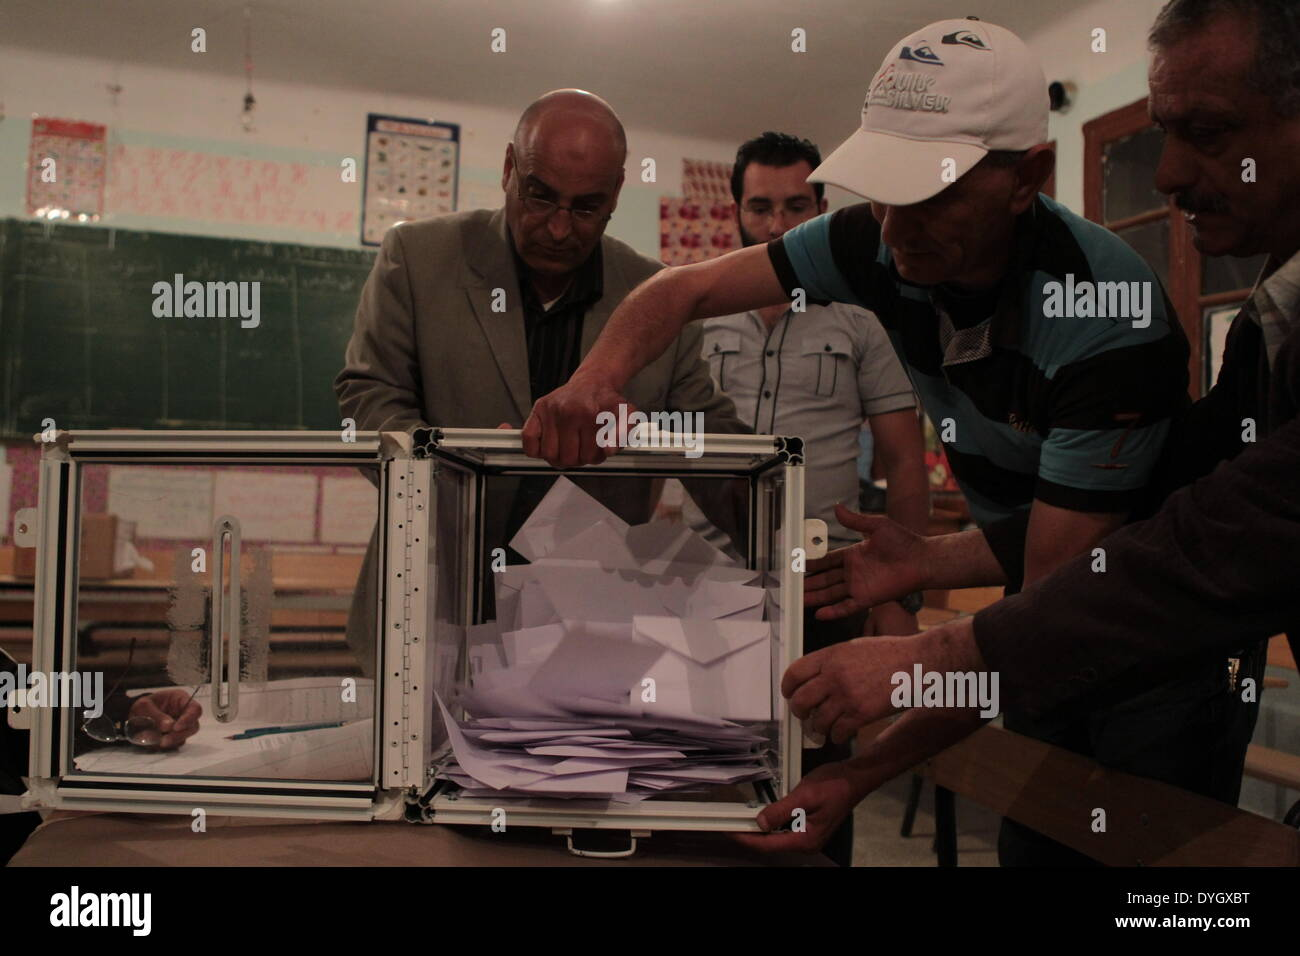 (140417) -- BOUIRA (ALGERIA), April 17, 2014 (Xinhua) -- Organizers, monitors and representatives of the 6 candidates running for the presidential election count ballots in a polling station in the locality of Lakhdaria in Bouira province, 100 km eastern Algiers, on April 17, 2014. (Xinhua/Mohamed Kadri) - Stock Image